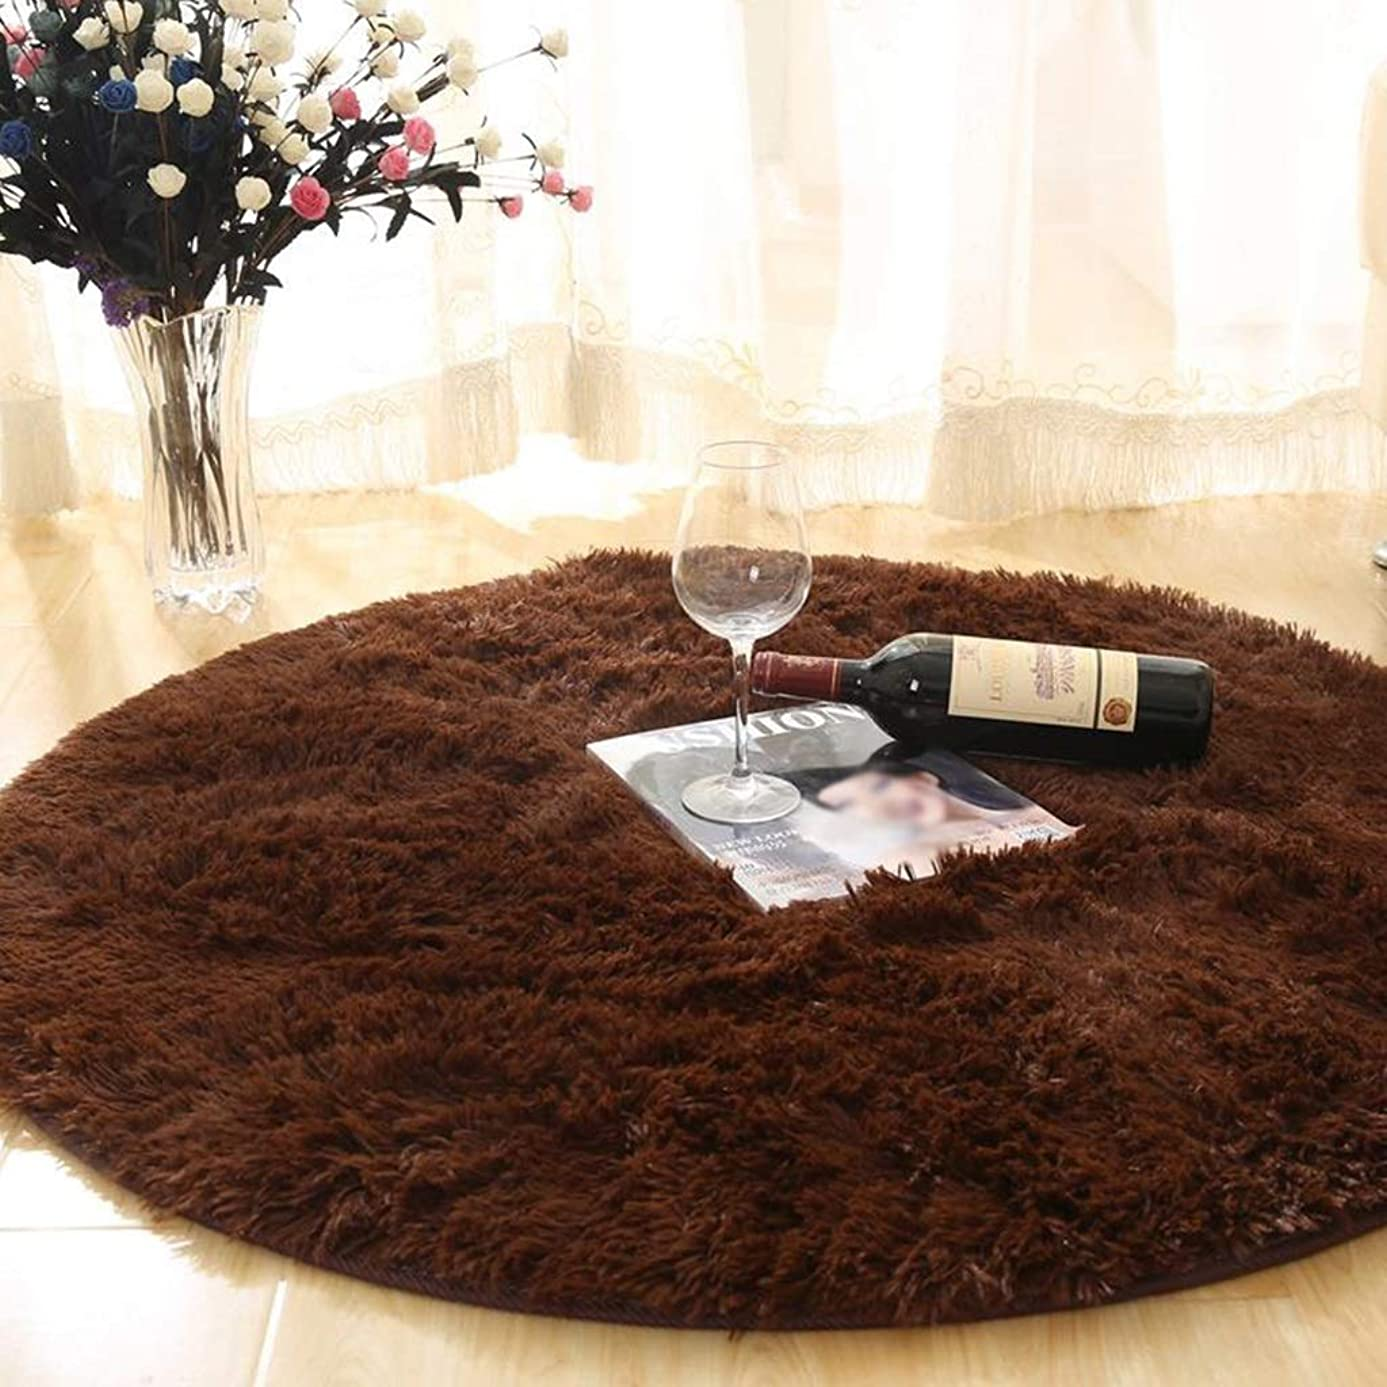 Household Bedroom Living Room Carpet Non Slip Washable Children's Crawling Blanket Round Plush Chair Mat -\# (Color : Coffee, Size : 160cm)